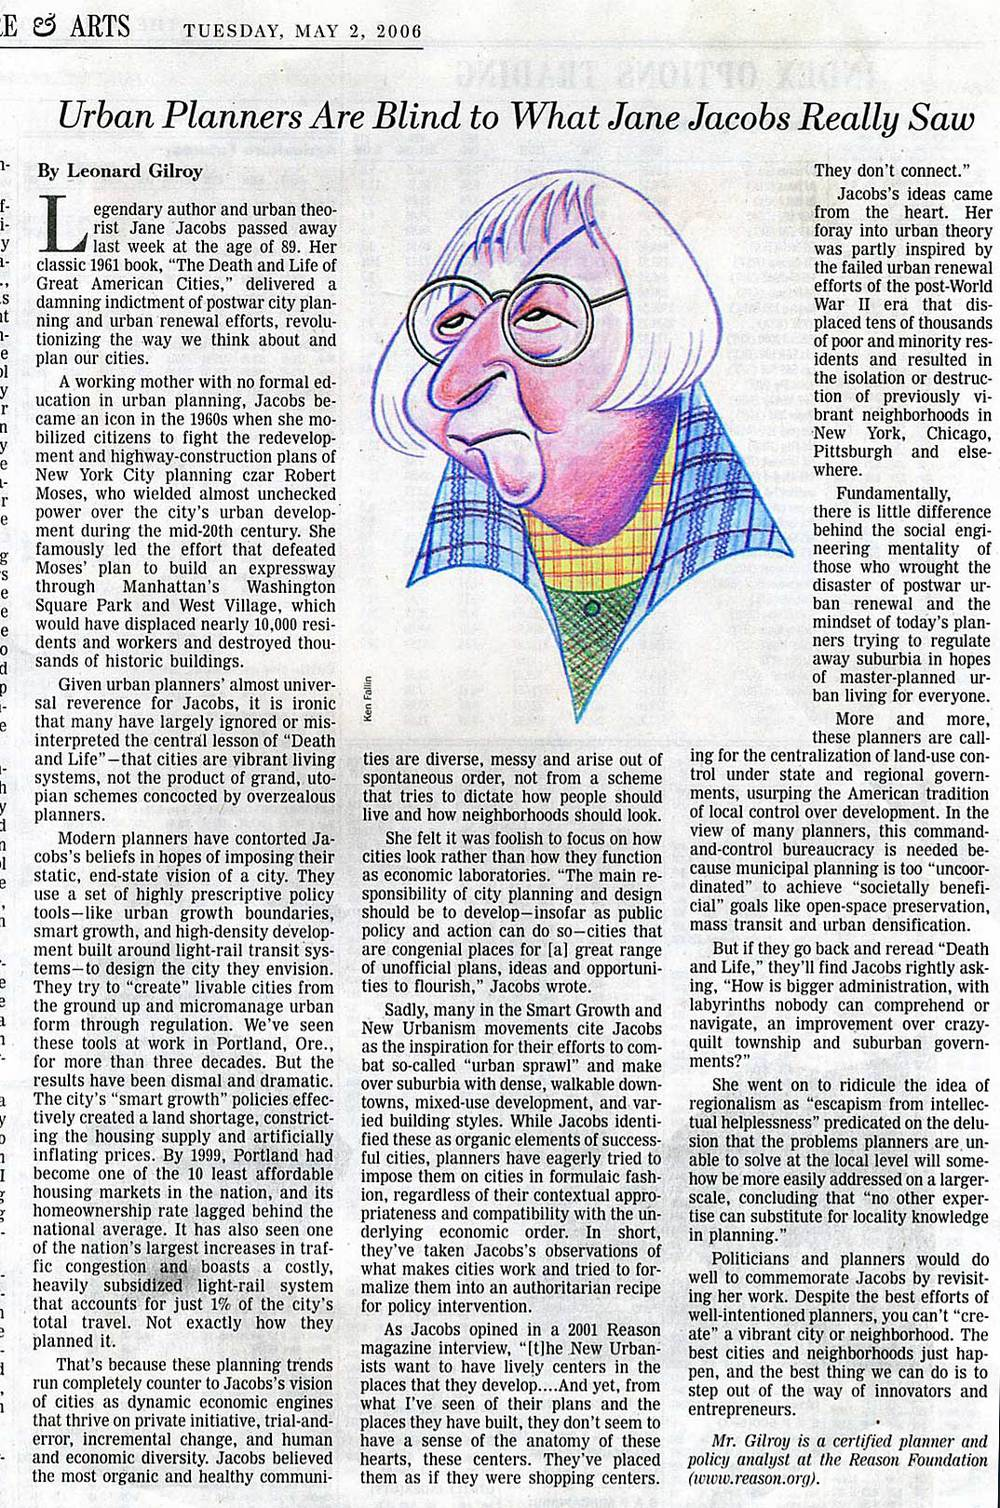 Leonard Gilroy,     Urban Planners Are Blind to What Jane Jacobs Really Saw   ,  The Wall Street Journal, 2006